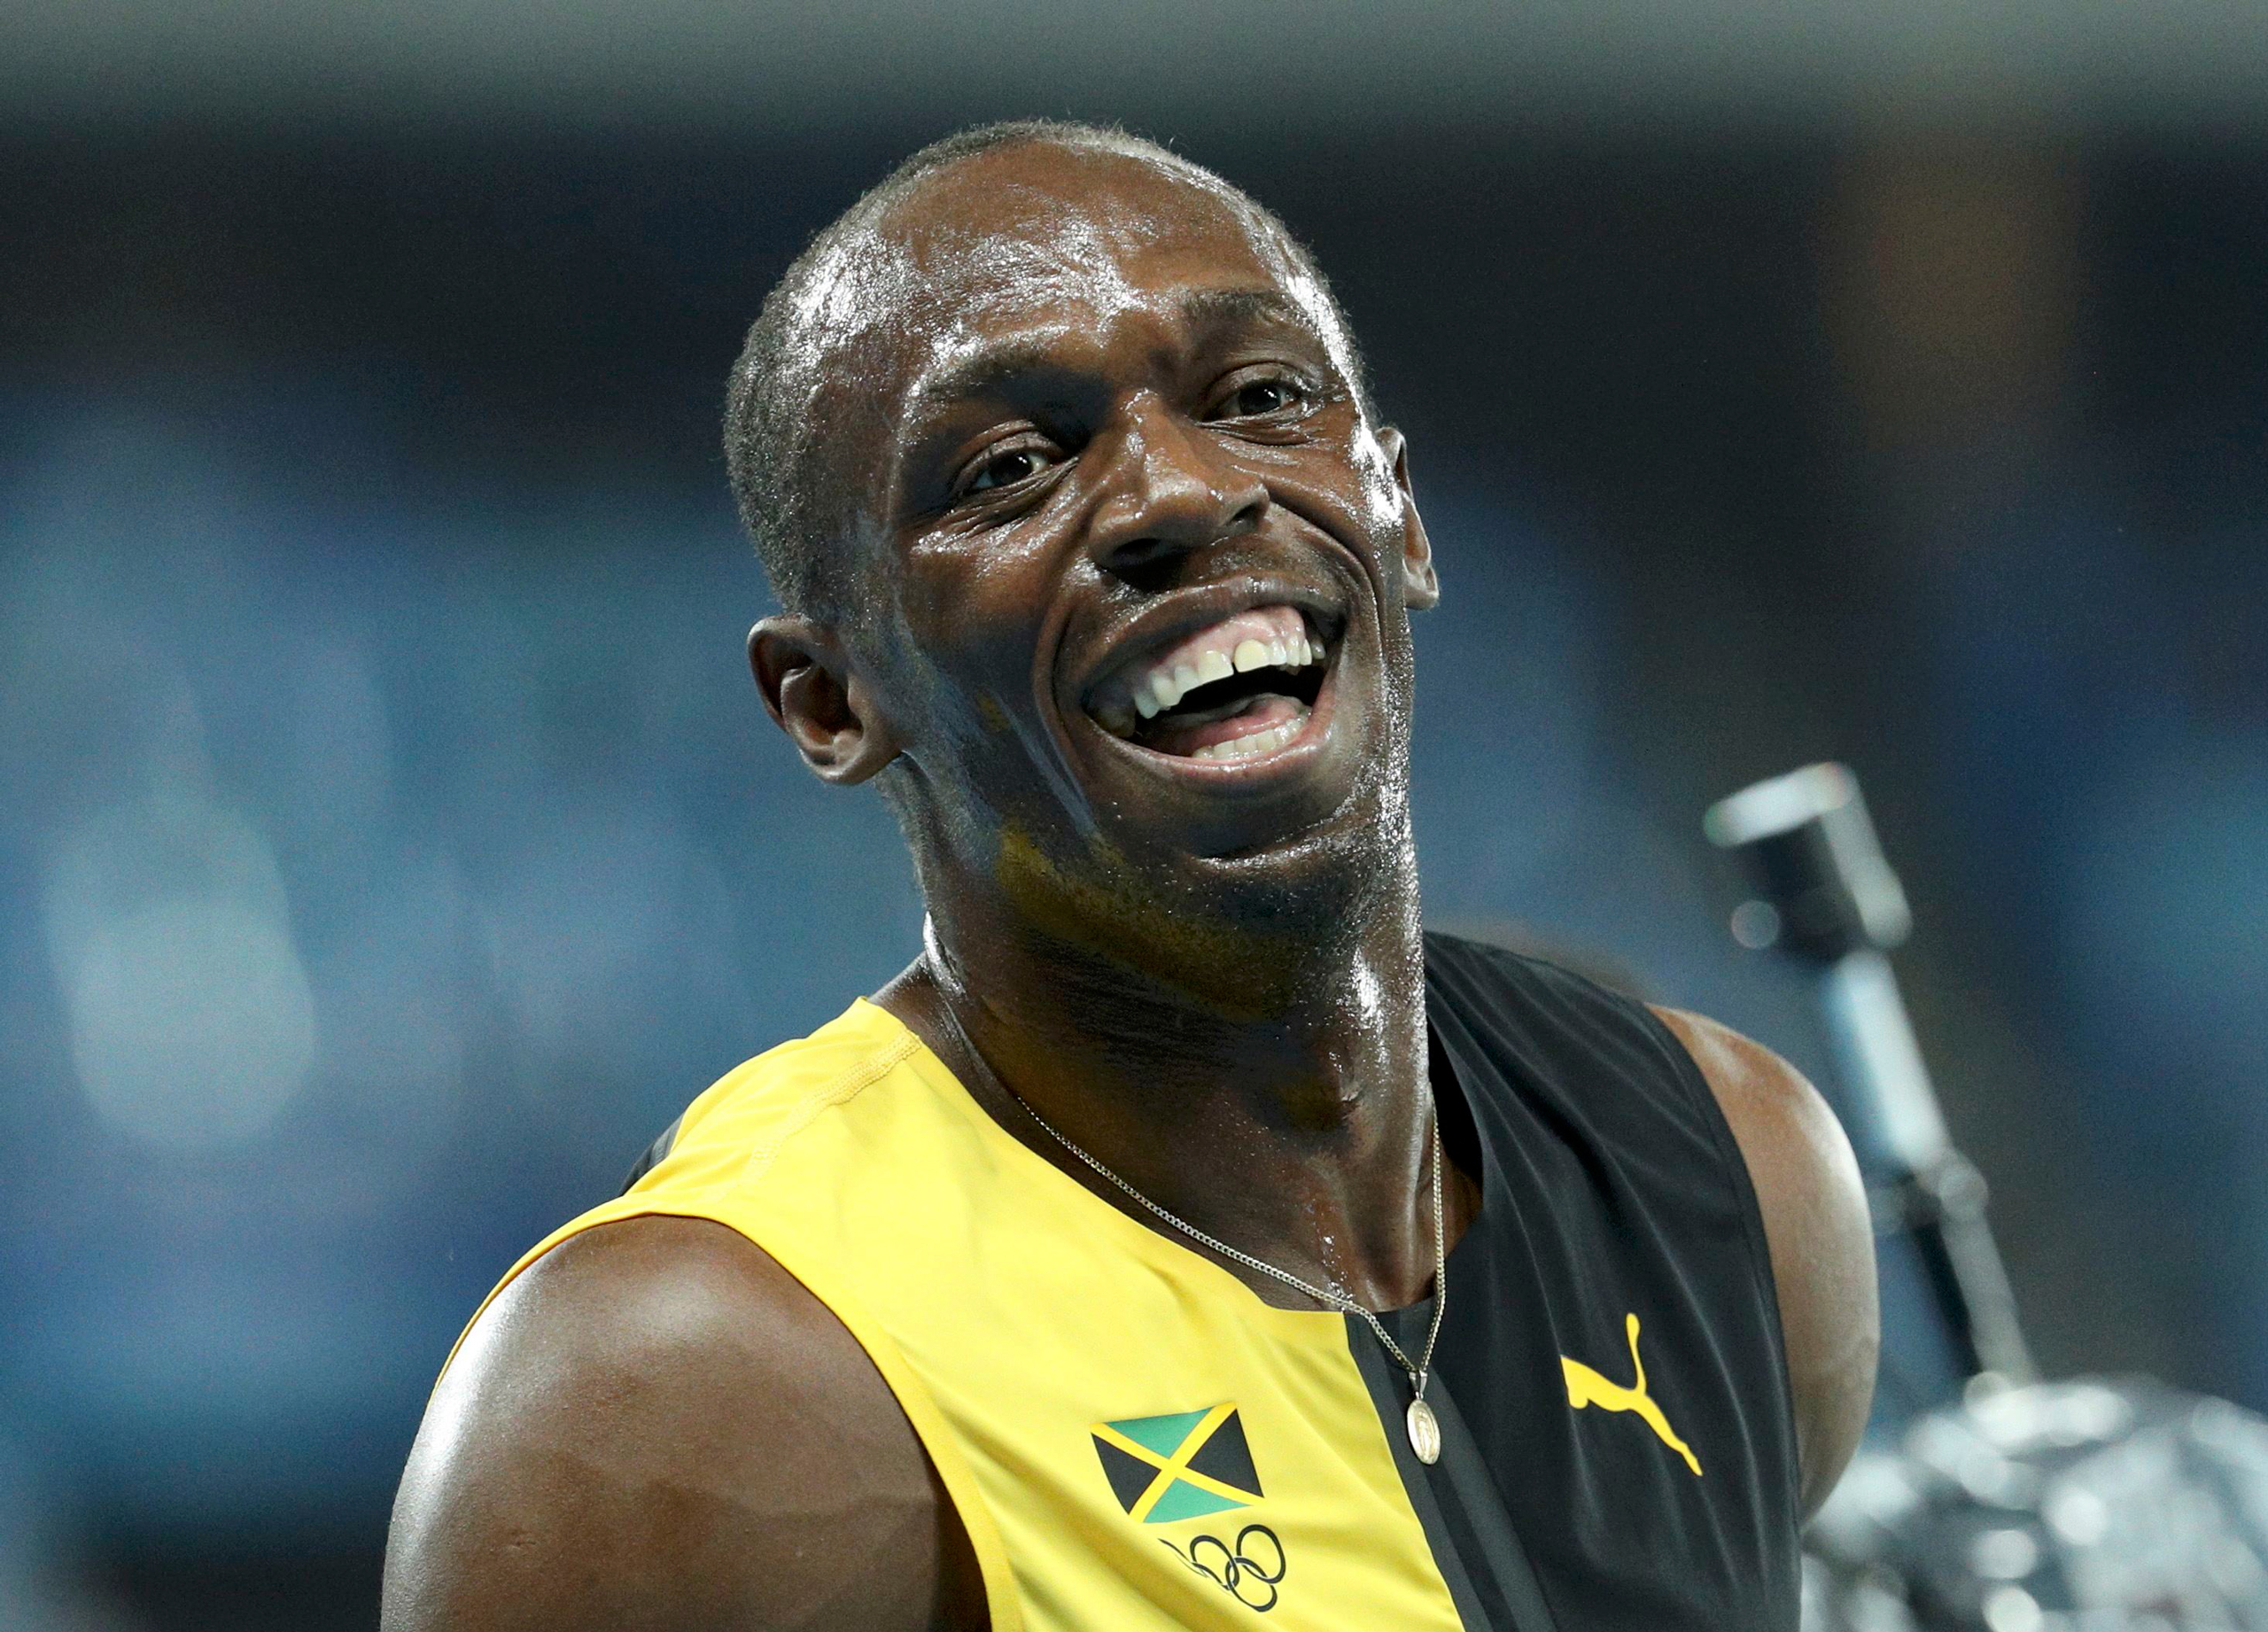 Jamaica's Usain Bolt celebrates winning the gold medal in the men's 4x100-meter relay final during the athletics competitions of the 2016 Summer Olympics at the Olympic stadium in Rio de Janeiro on Aug. 19, 2016.